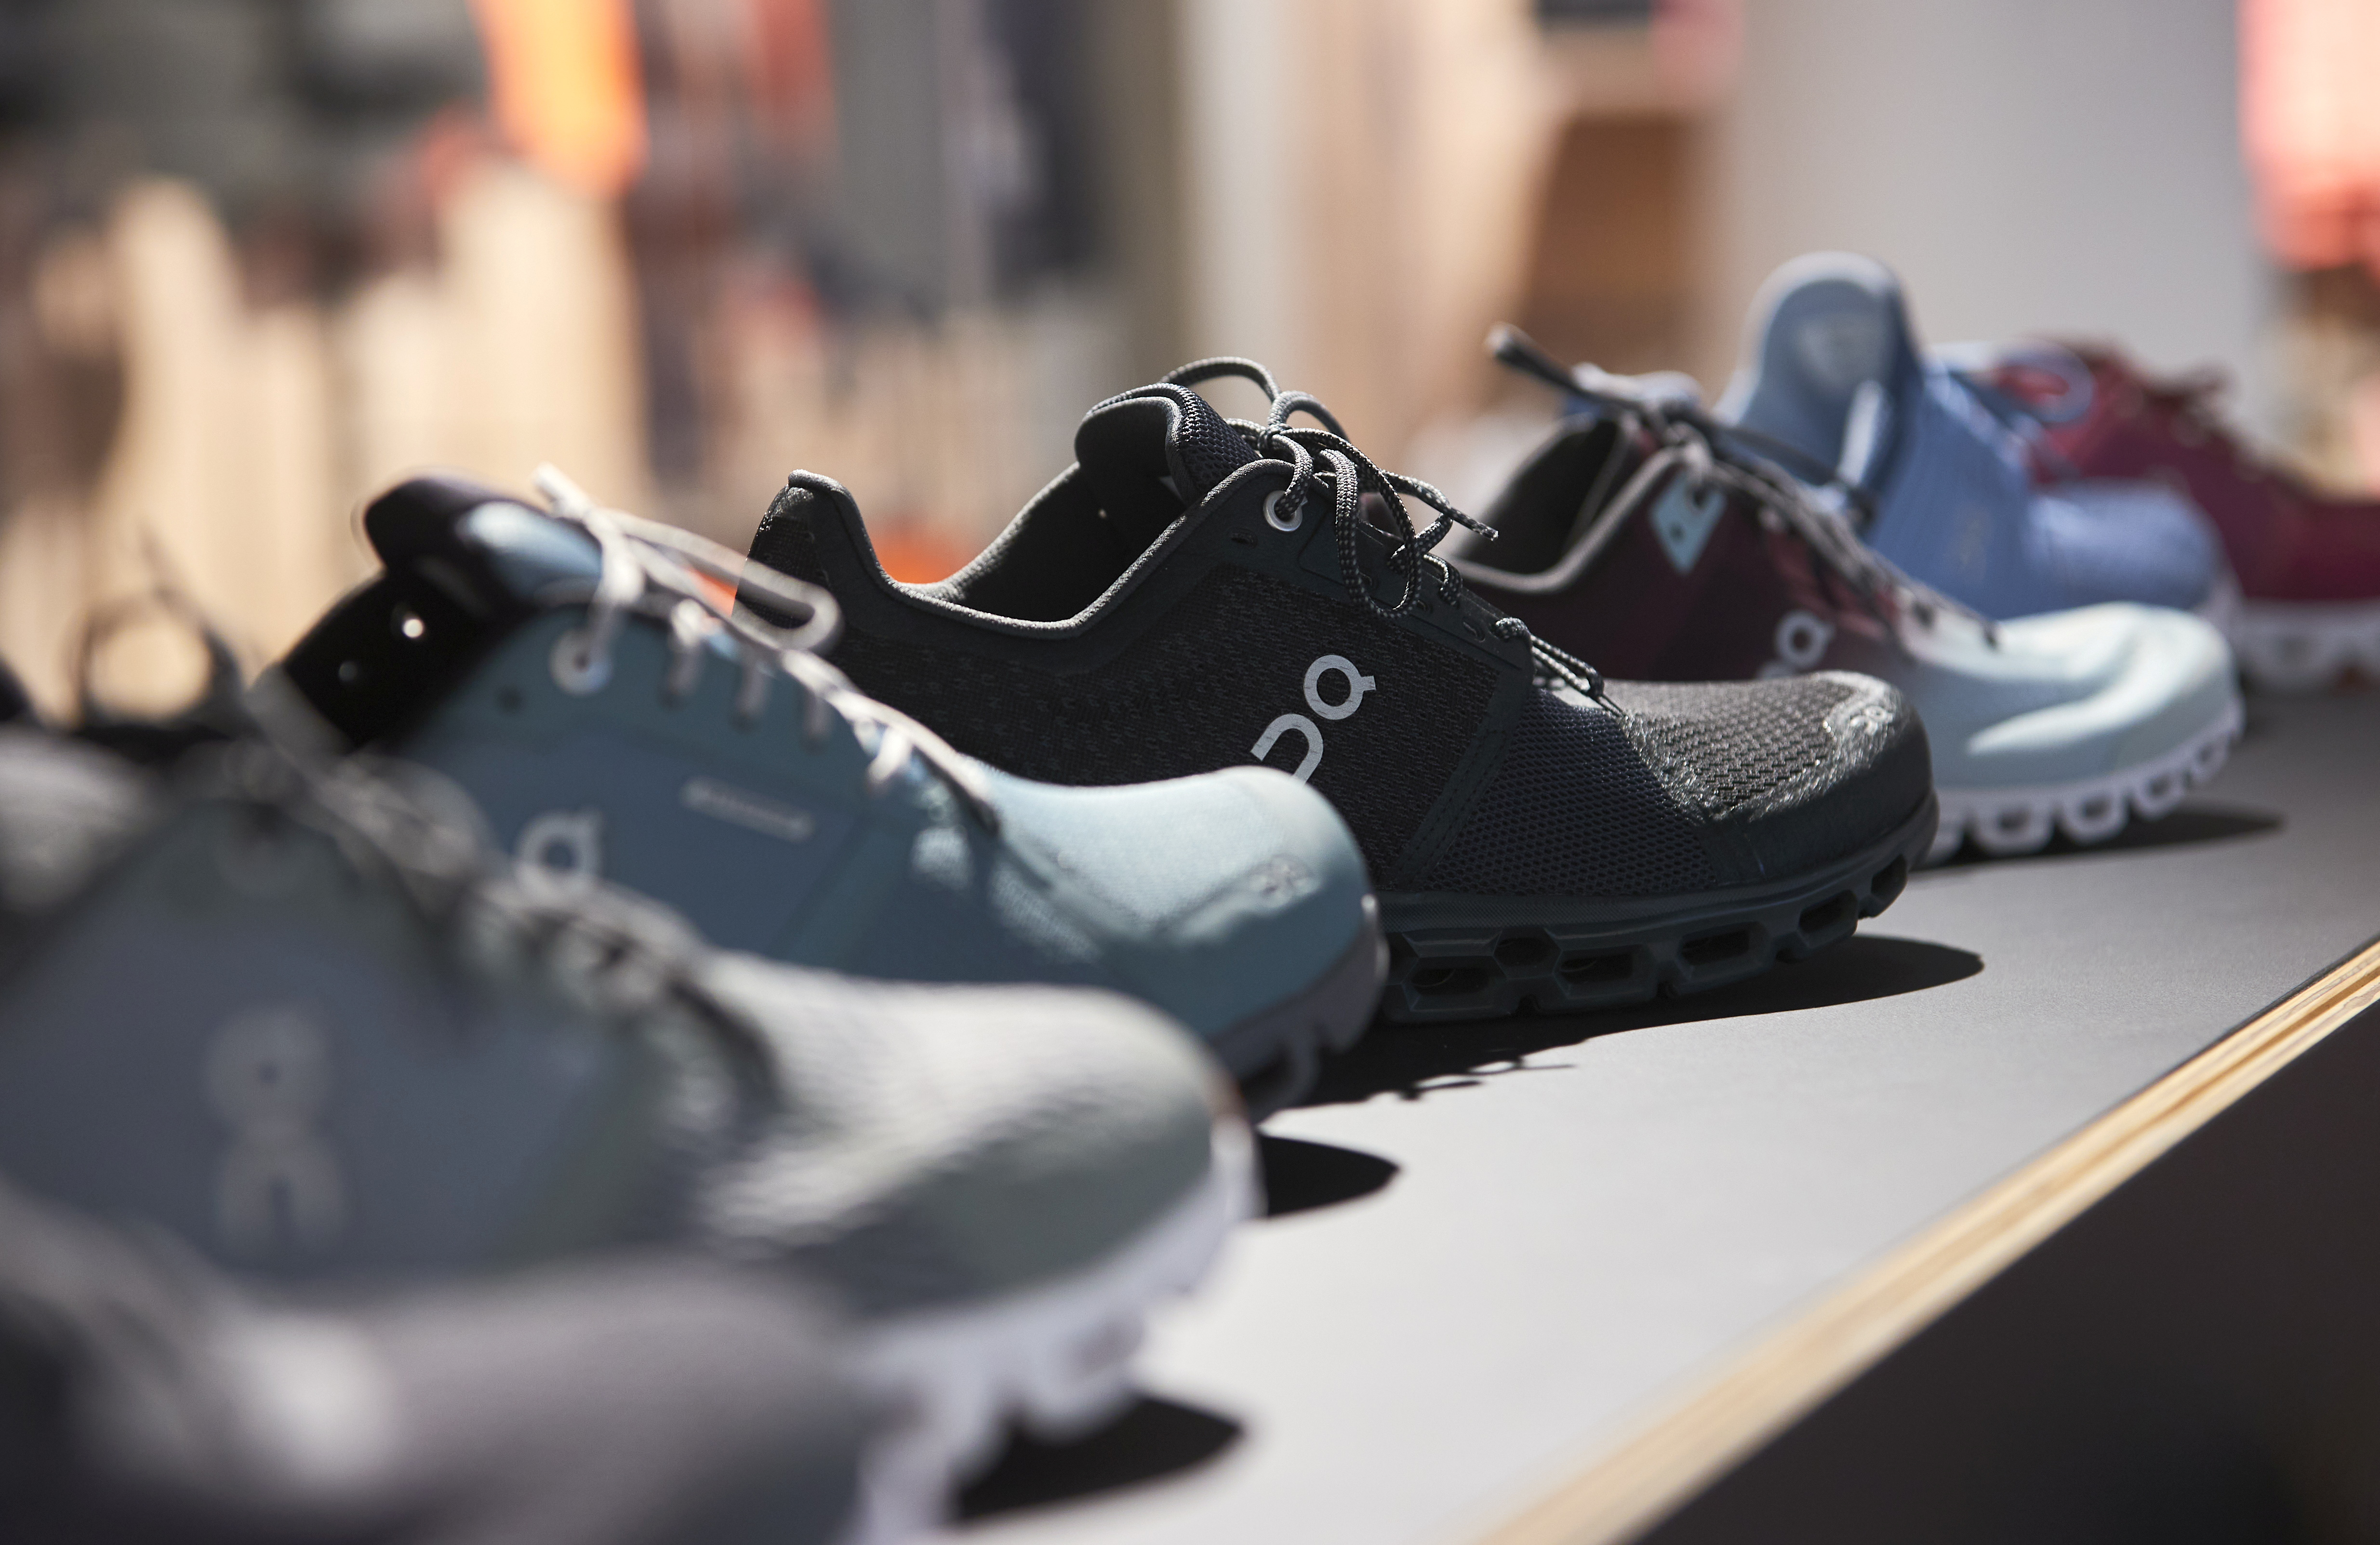 Shoesby ON (Run on Clouds), a shoemaker backed by Swiss tennis player Roger Federer, are pictured in the Swiss Sport Style shop ahead of the Initial Public Offering (IPO), in Lausanne, Switzerland, September 14, 2021. REUTERS/Denis Balibouse